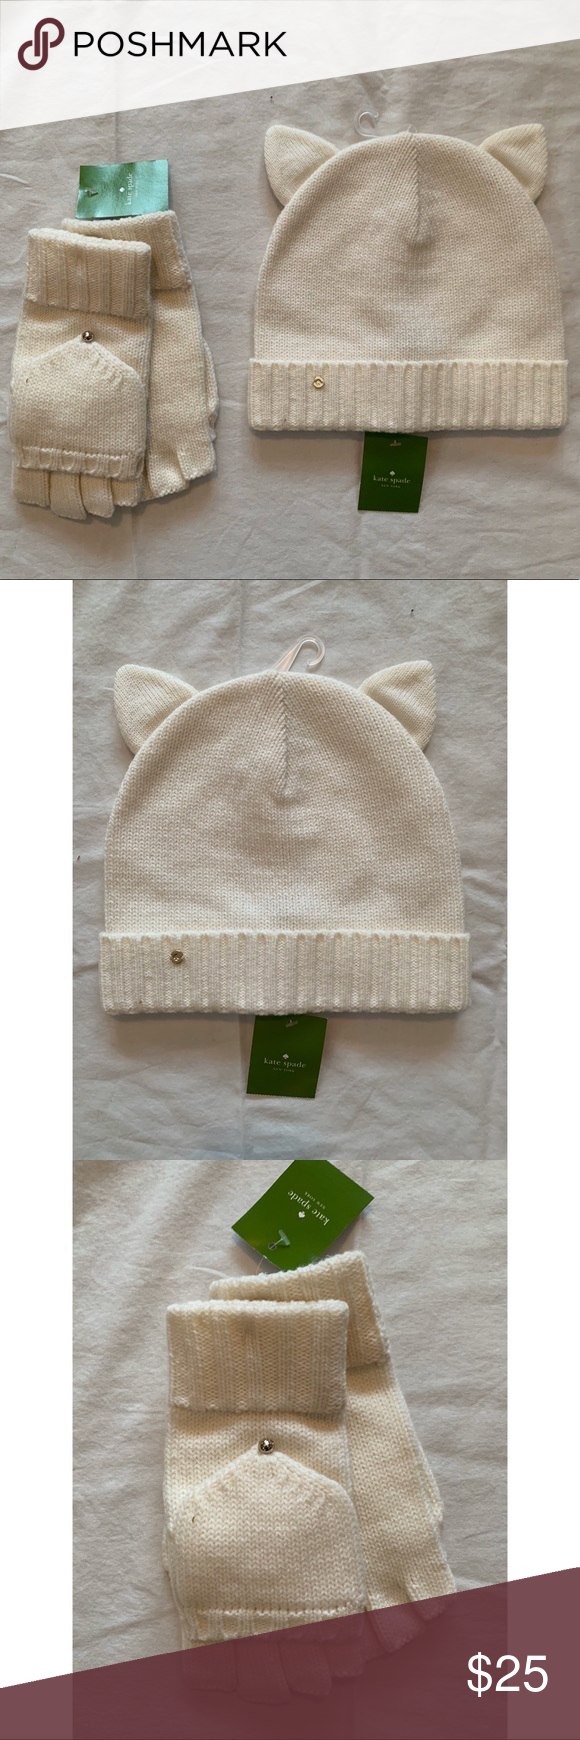 Kate Spade Knitted Hat And Gloves Knitted Hats Knitted Kate Spade